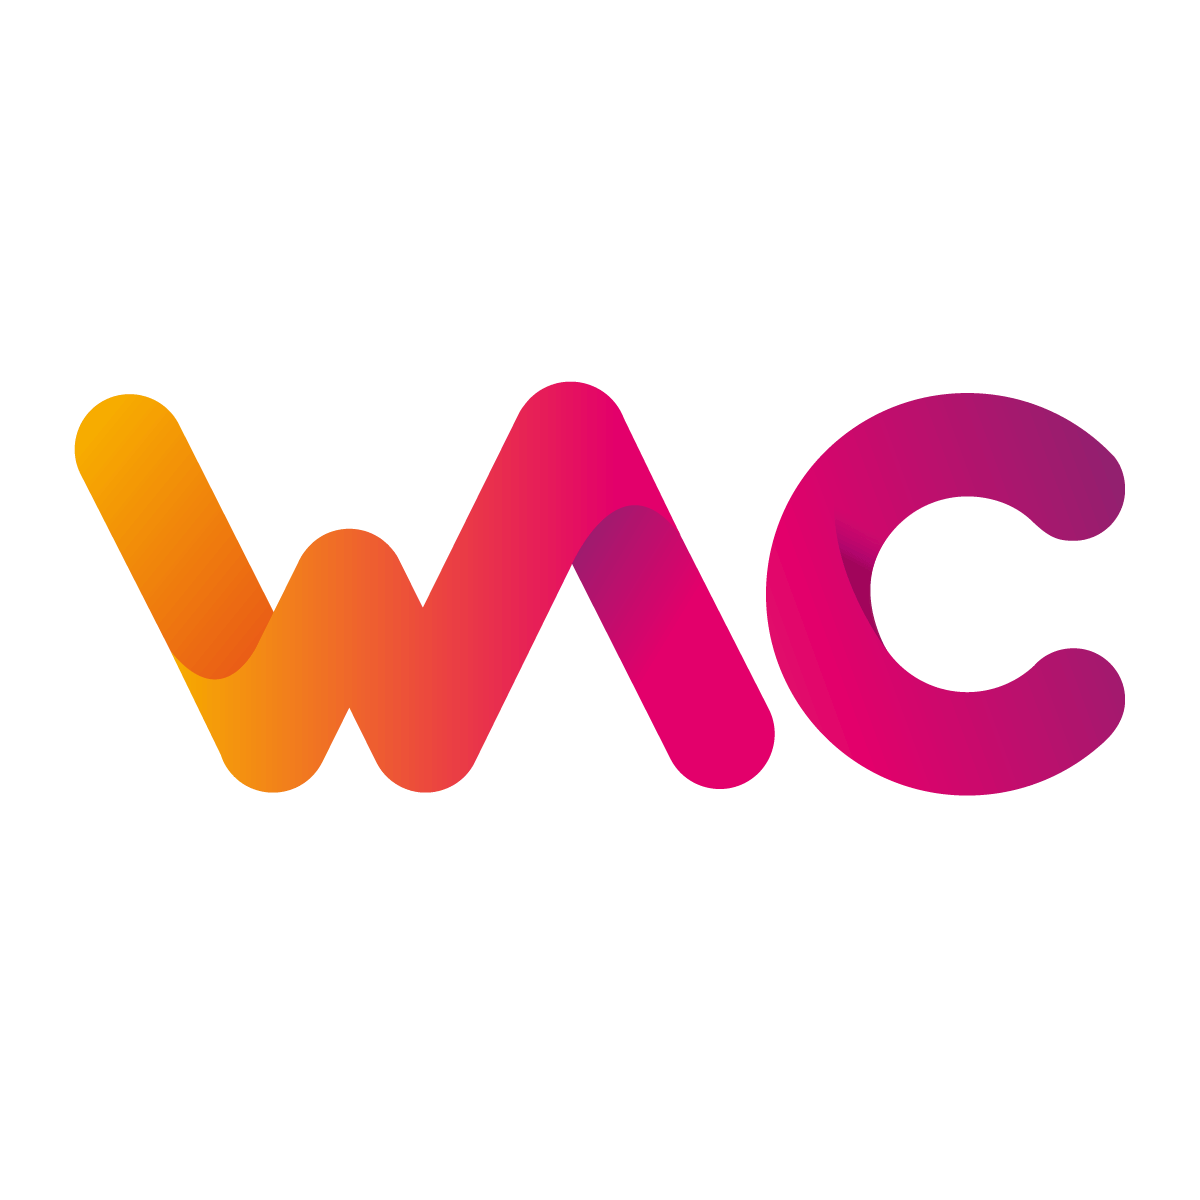 WAC - We Are Creative